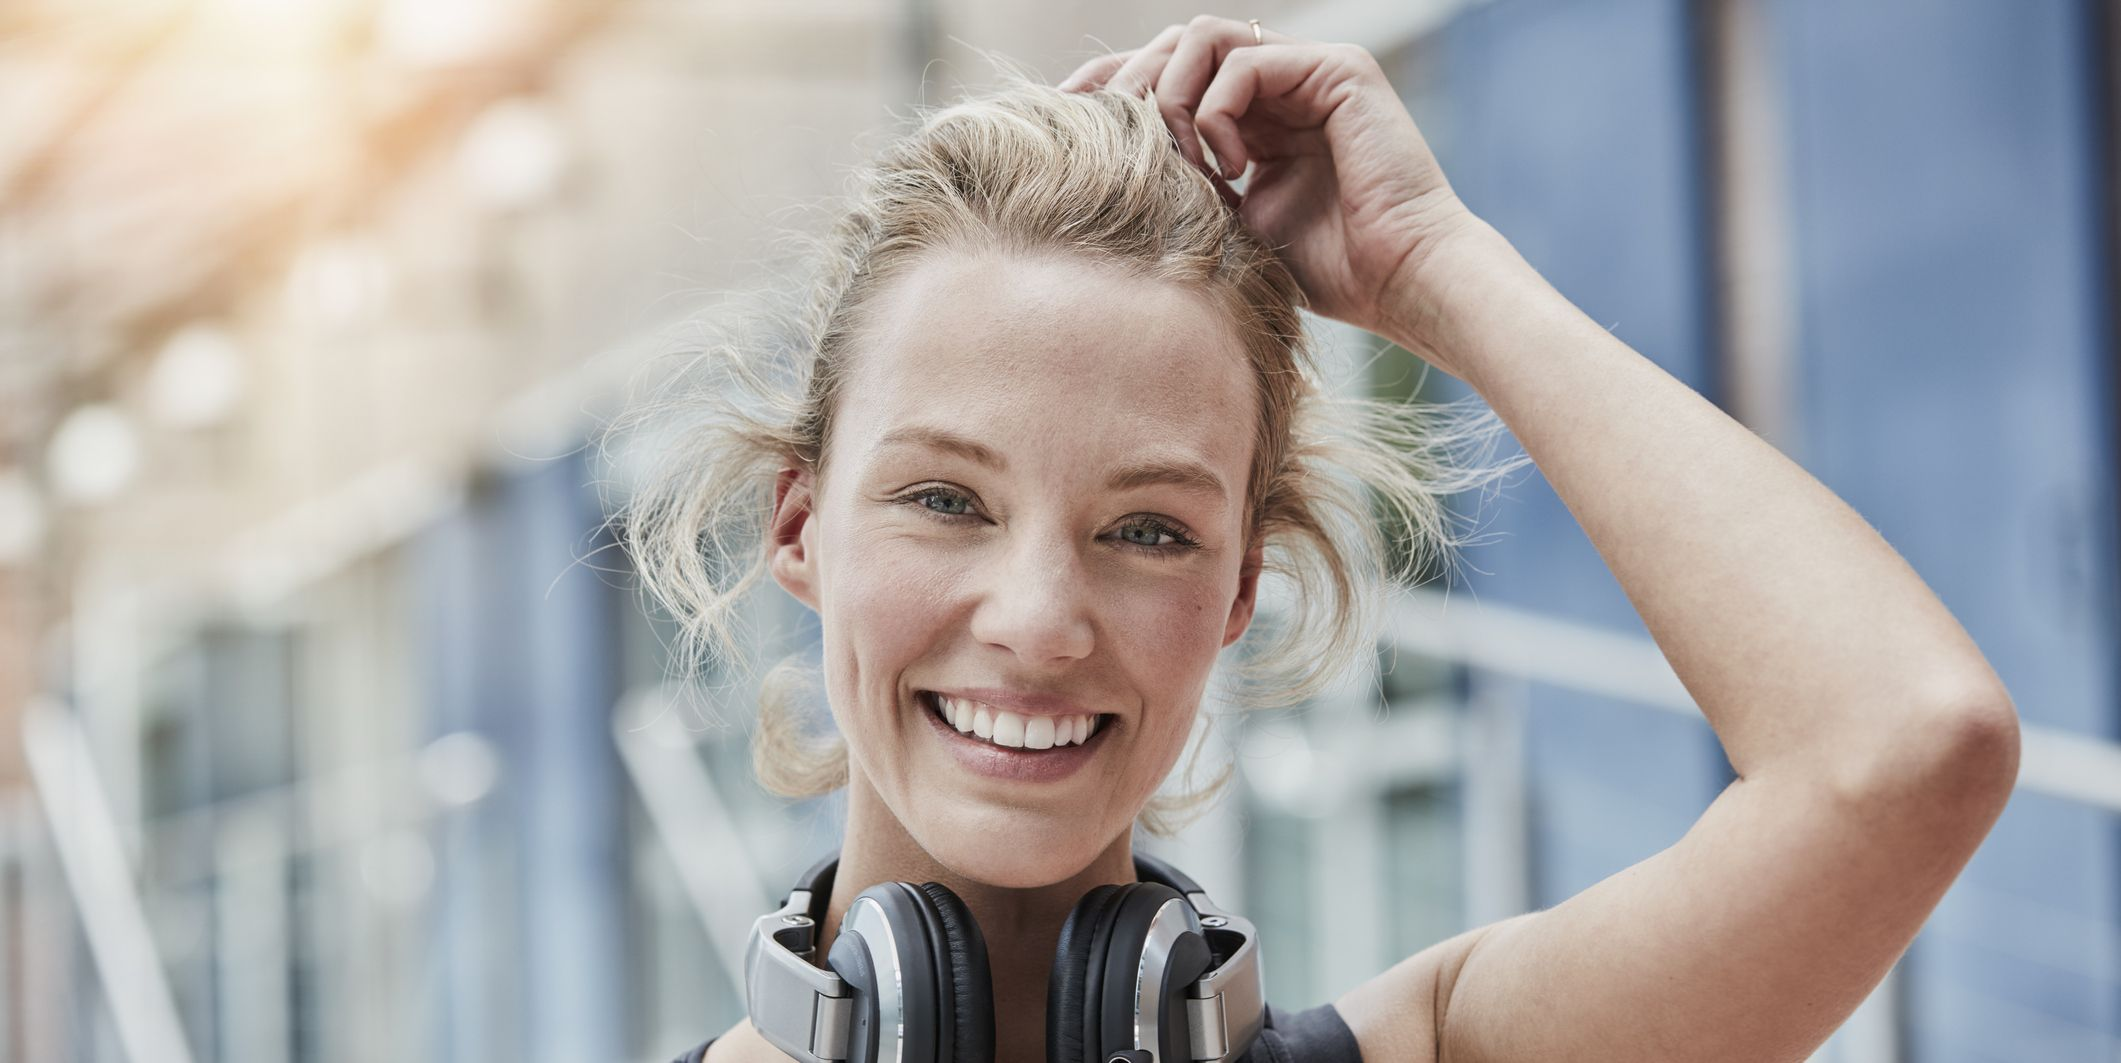 Portrait of smiling young woman with headphones